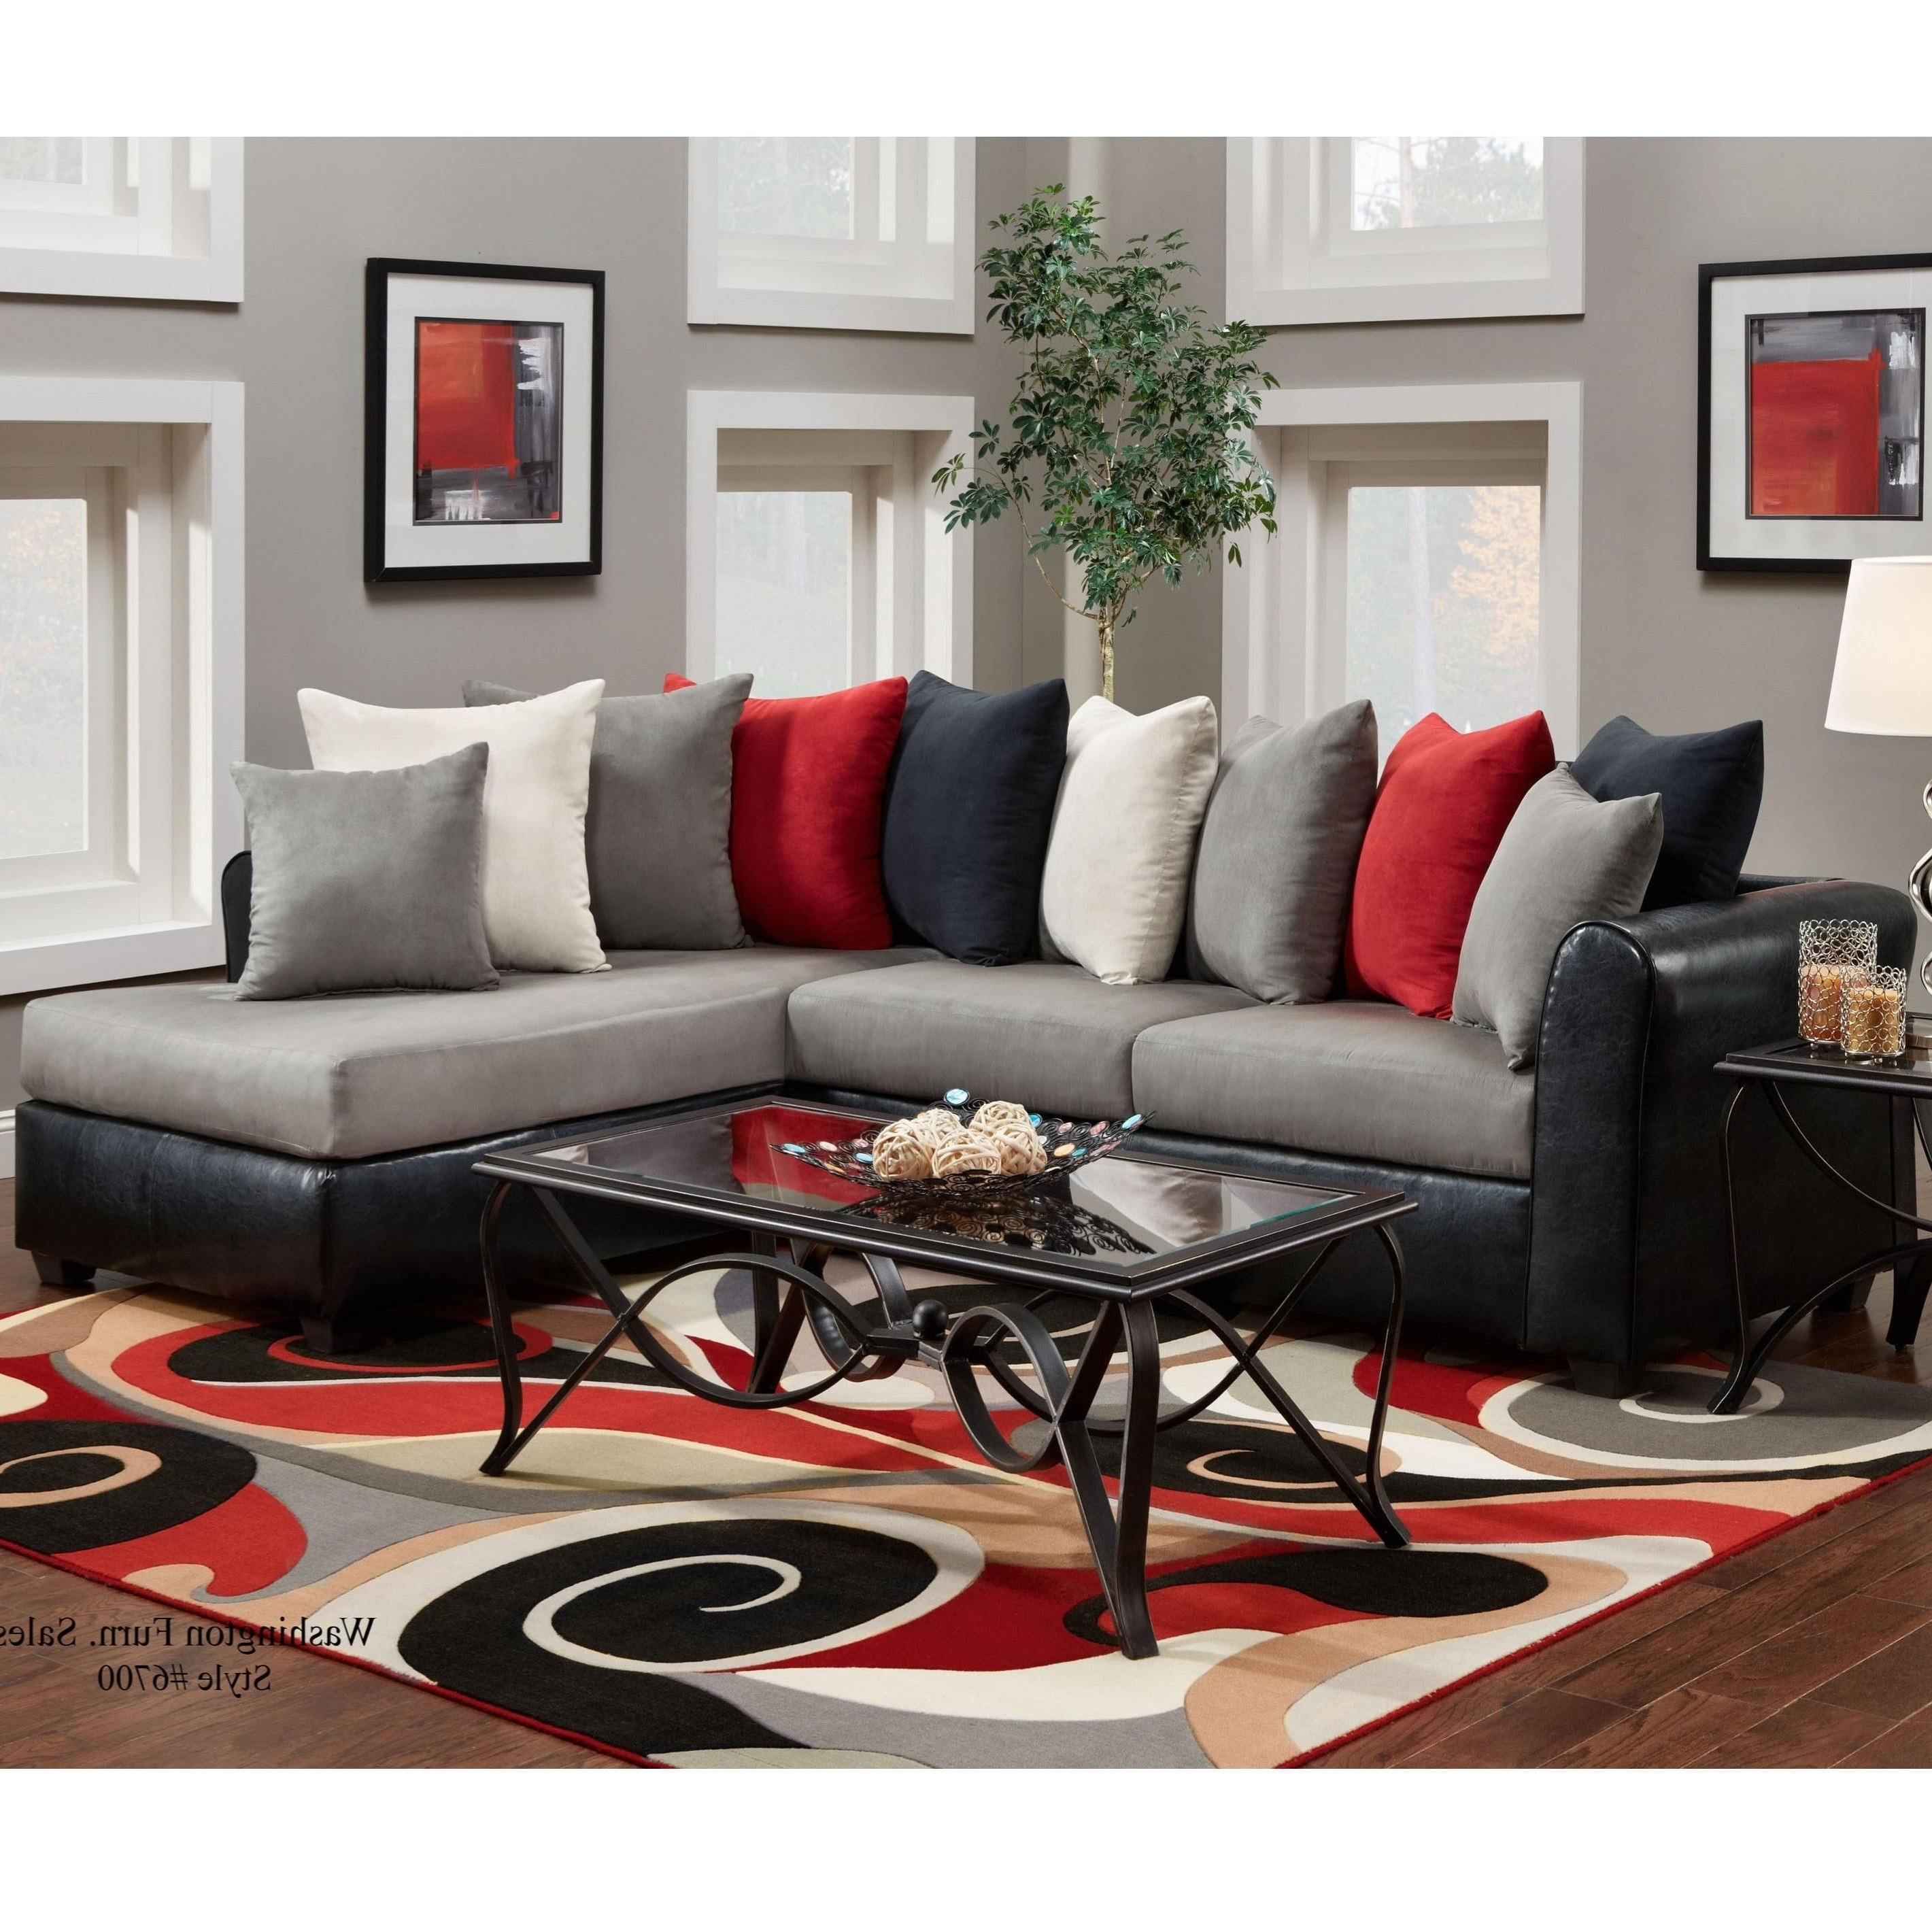 Most Popular Washington Furniture 6700 Sectional With Rsf Chaise And Pillow Inside Phoenix Sectional Sofas (View 17 of 20)